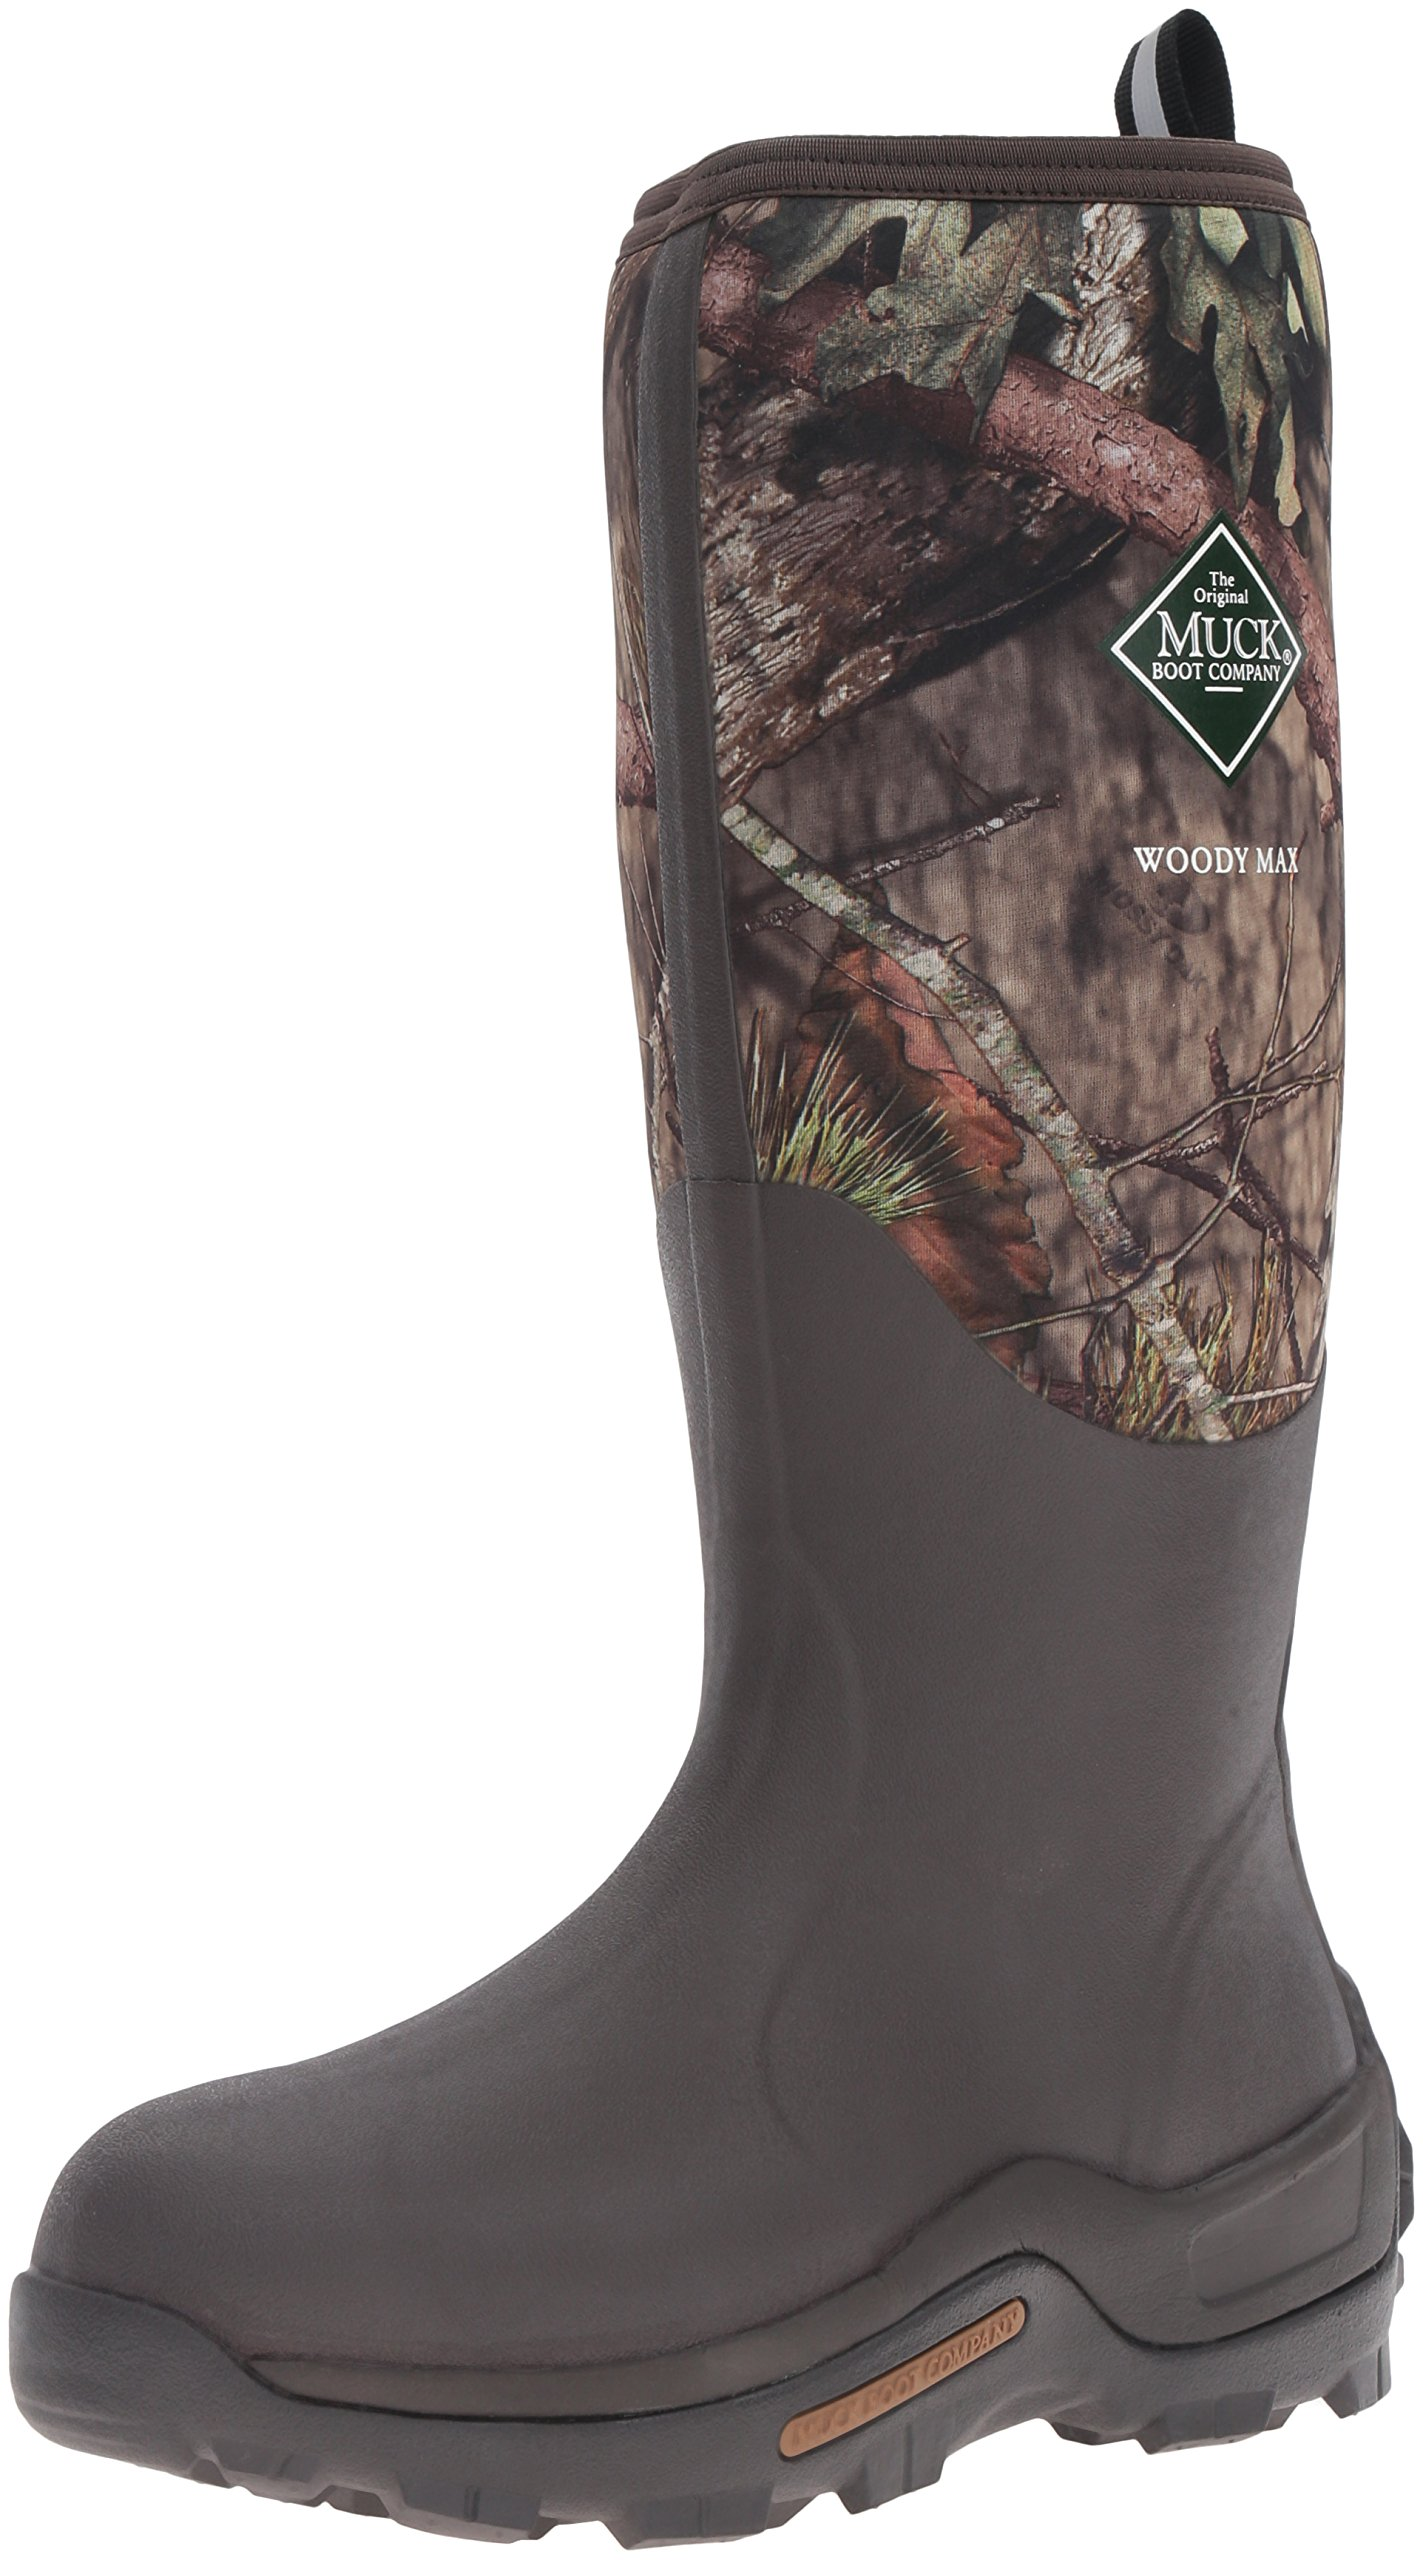 Muck Woody Max Rubber Insulated Men's Hunting Boots by Muck Boot